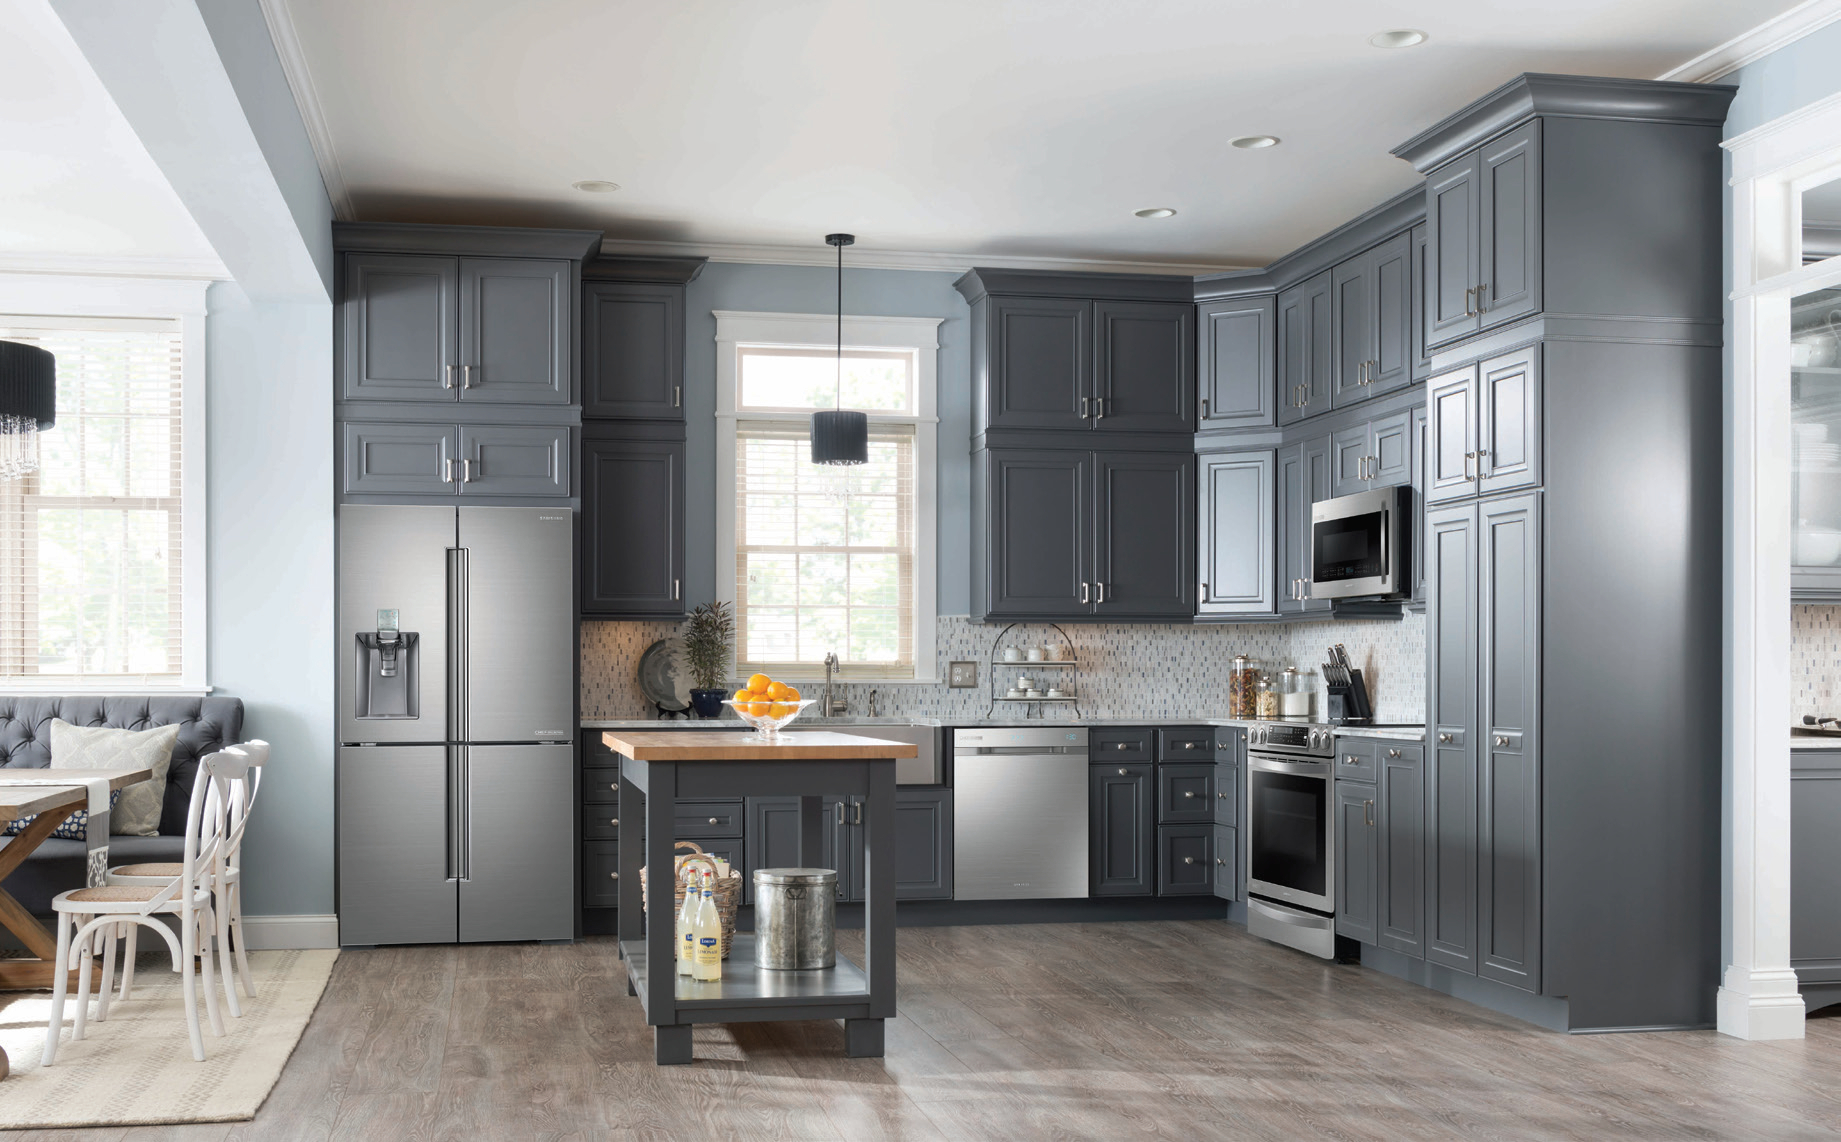 Entertaining In A Gourmet Kitchen Home Trends Magazine